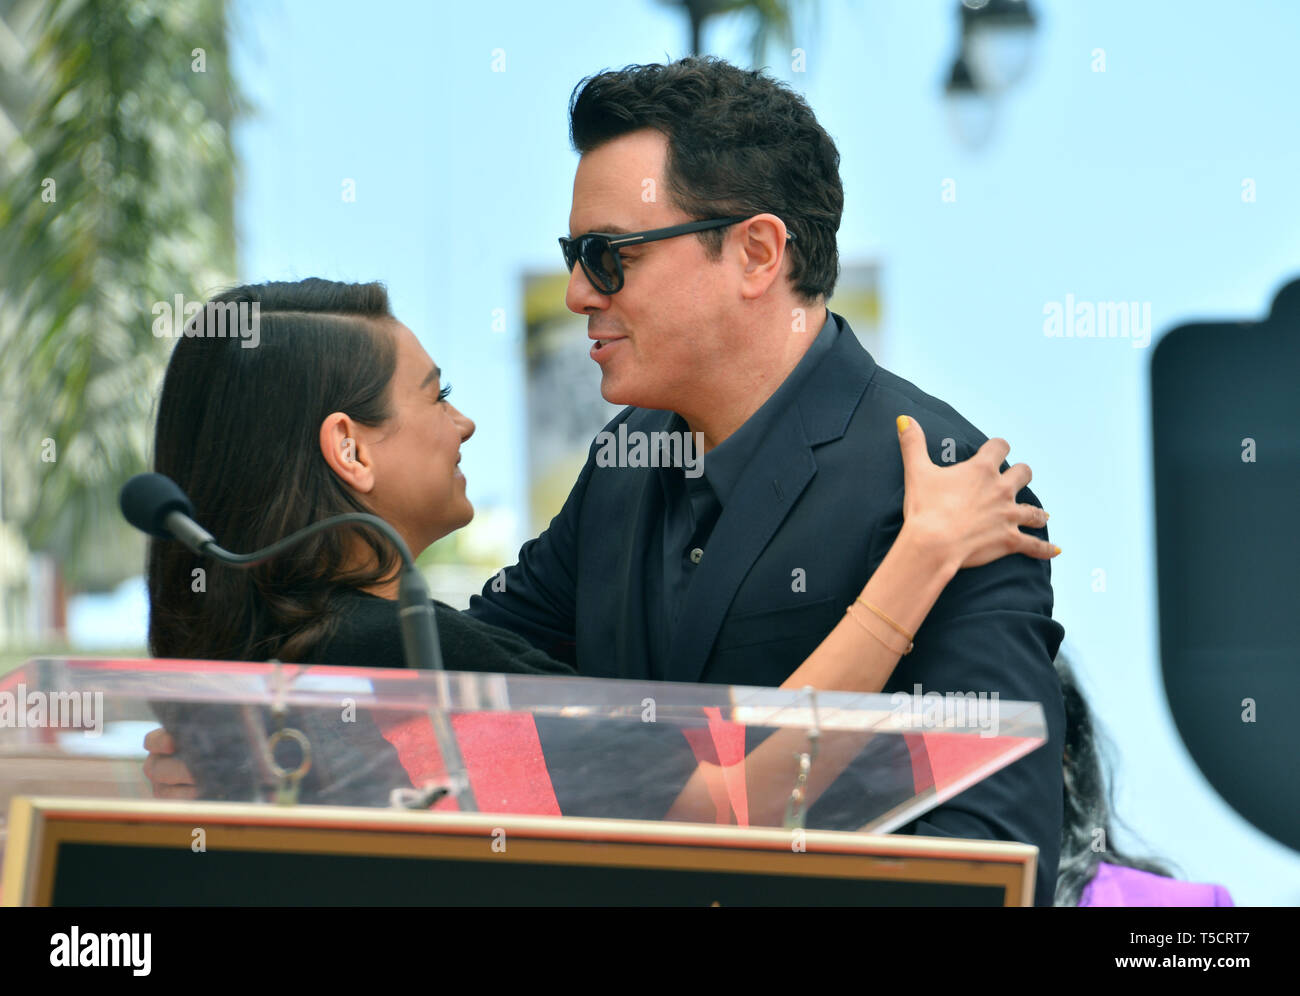 Los Angeles, USA. 23rd Apr, 2019. LOS ANGELES, USA. April 23, 2019: Seth MacFarlane & Mila Kunis at the Hollywood Walk of Fame Star Ceremony honoring actor, animator and comedian Seth MacFarlane. Picture Credit: Paul Smith/Alamy Live News - Stock Image